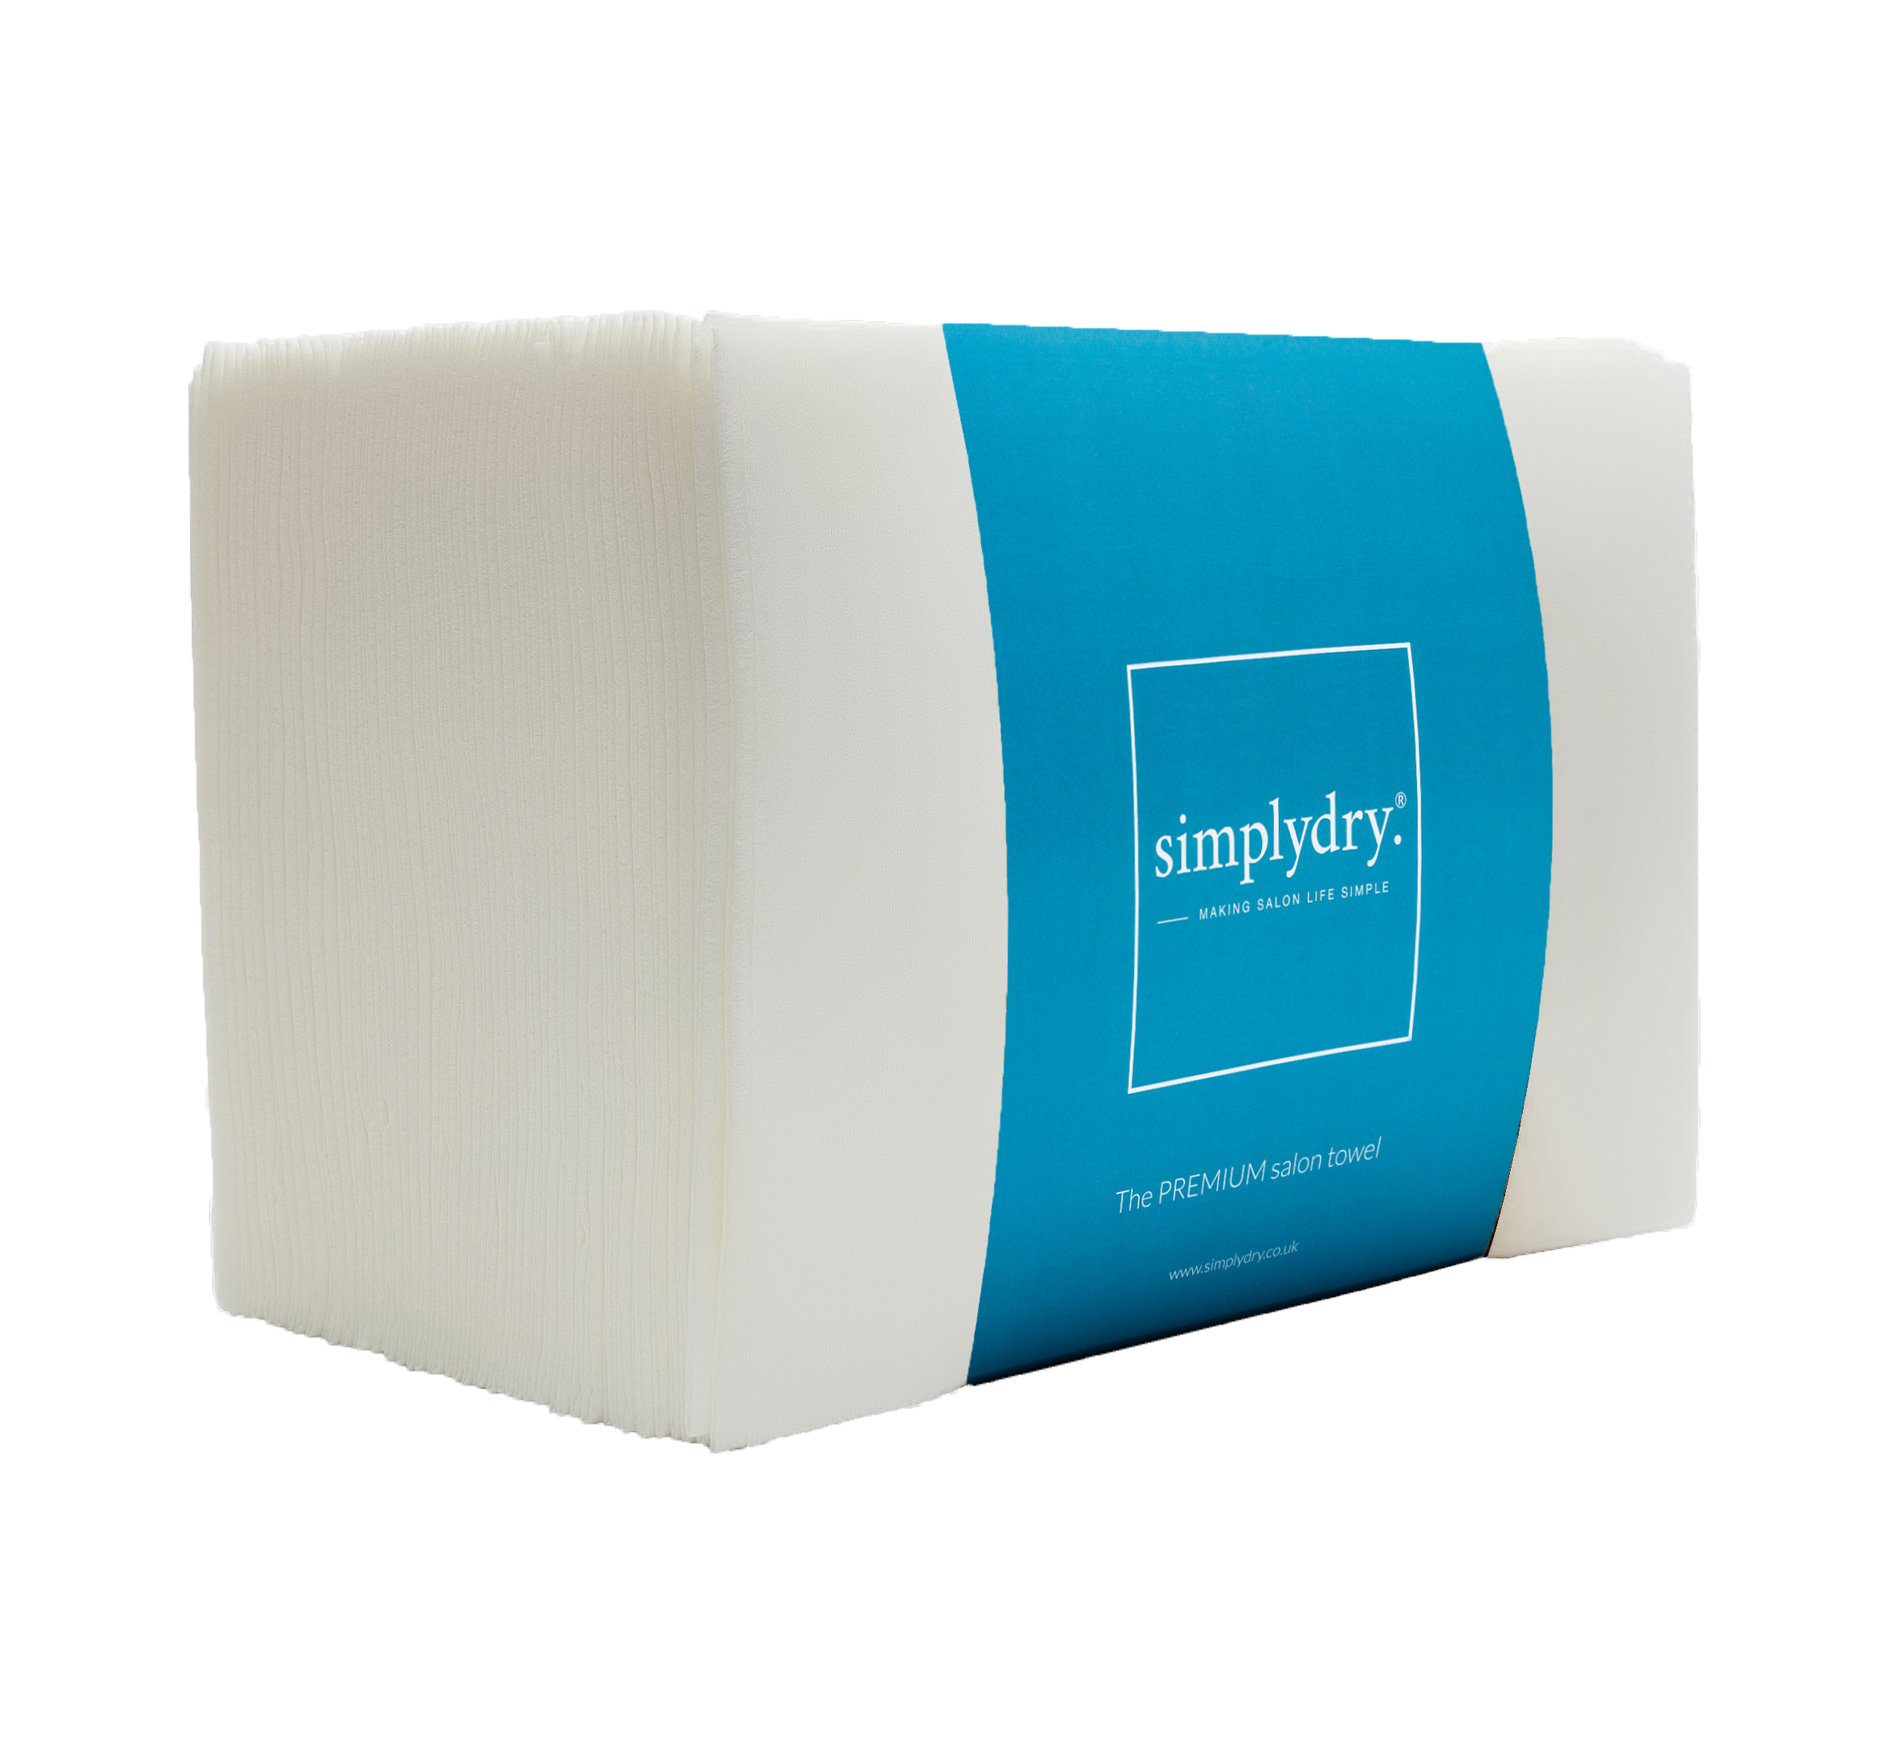 Simplydry Ltd